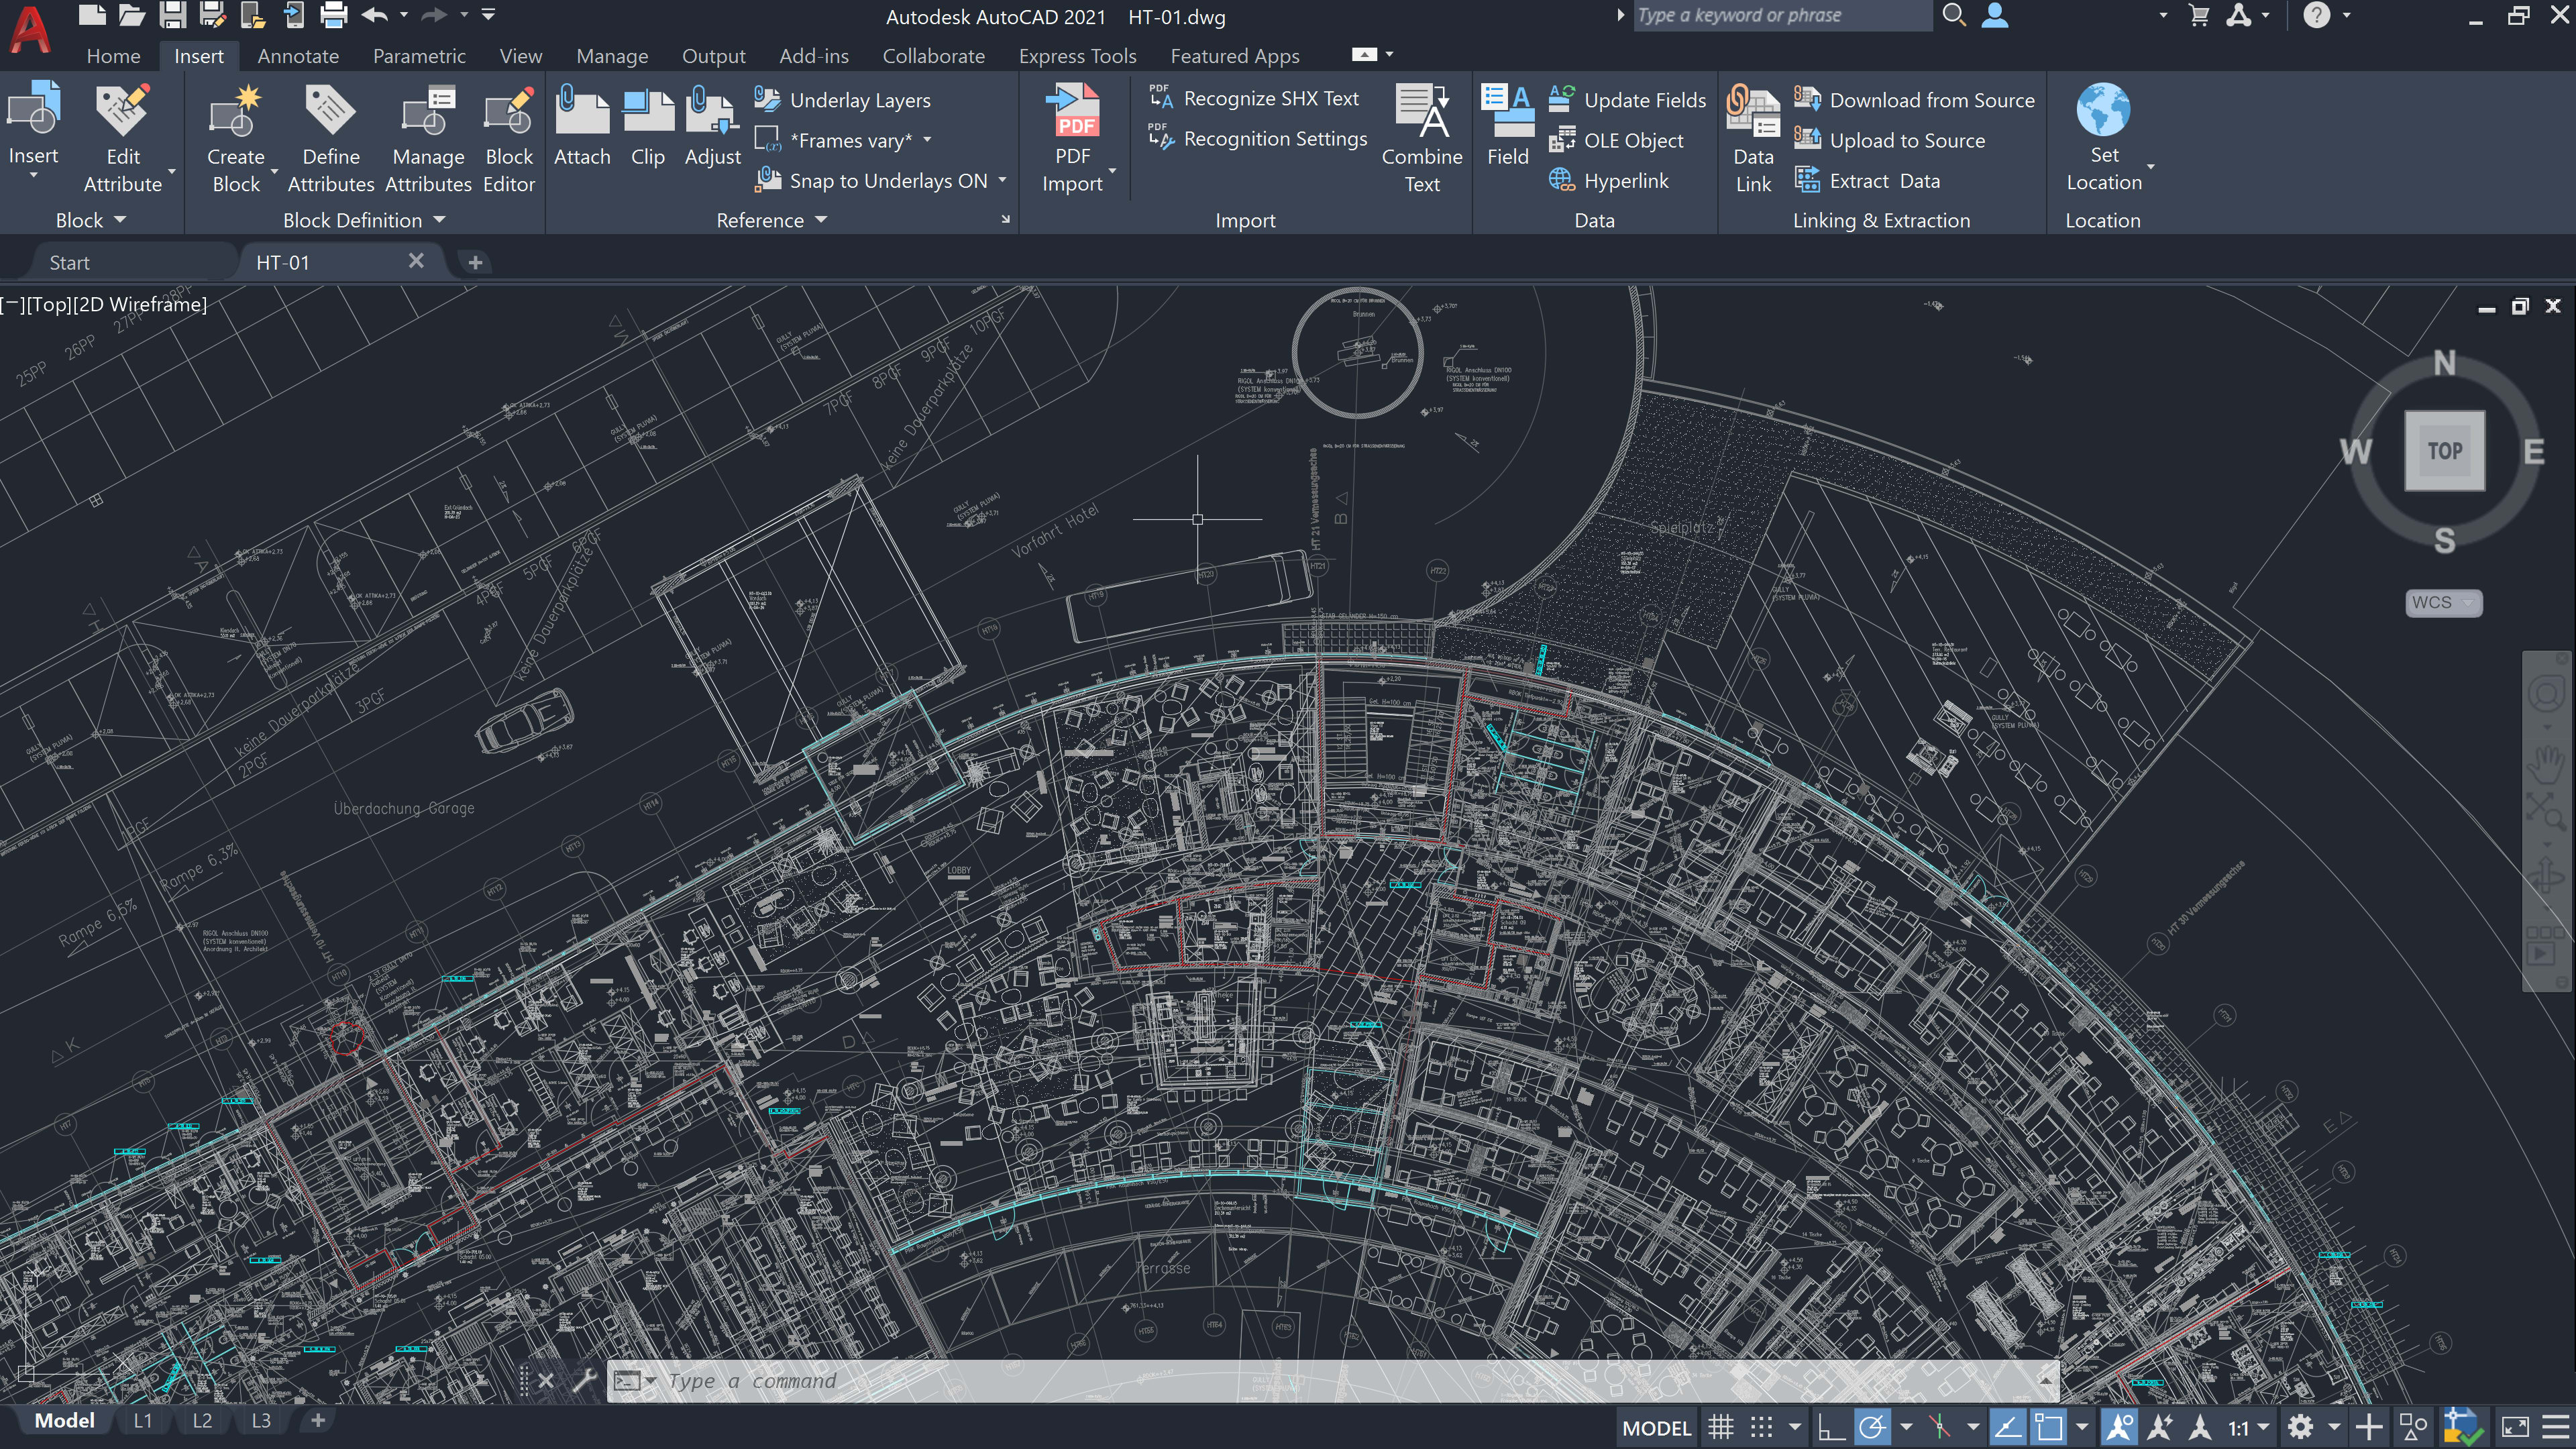 AutoCAD 2021 performance